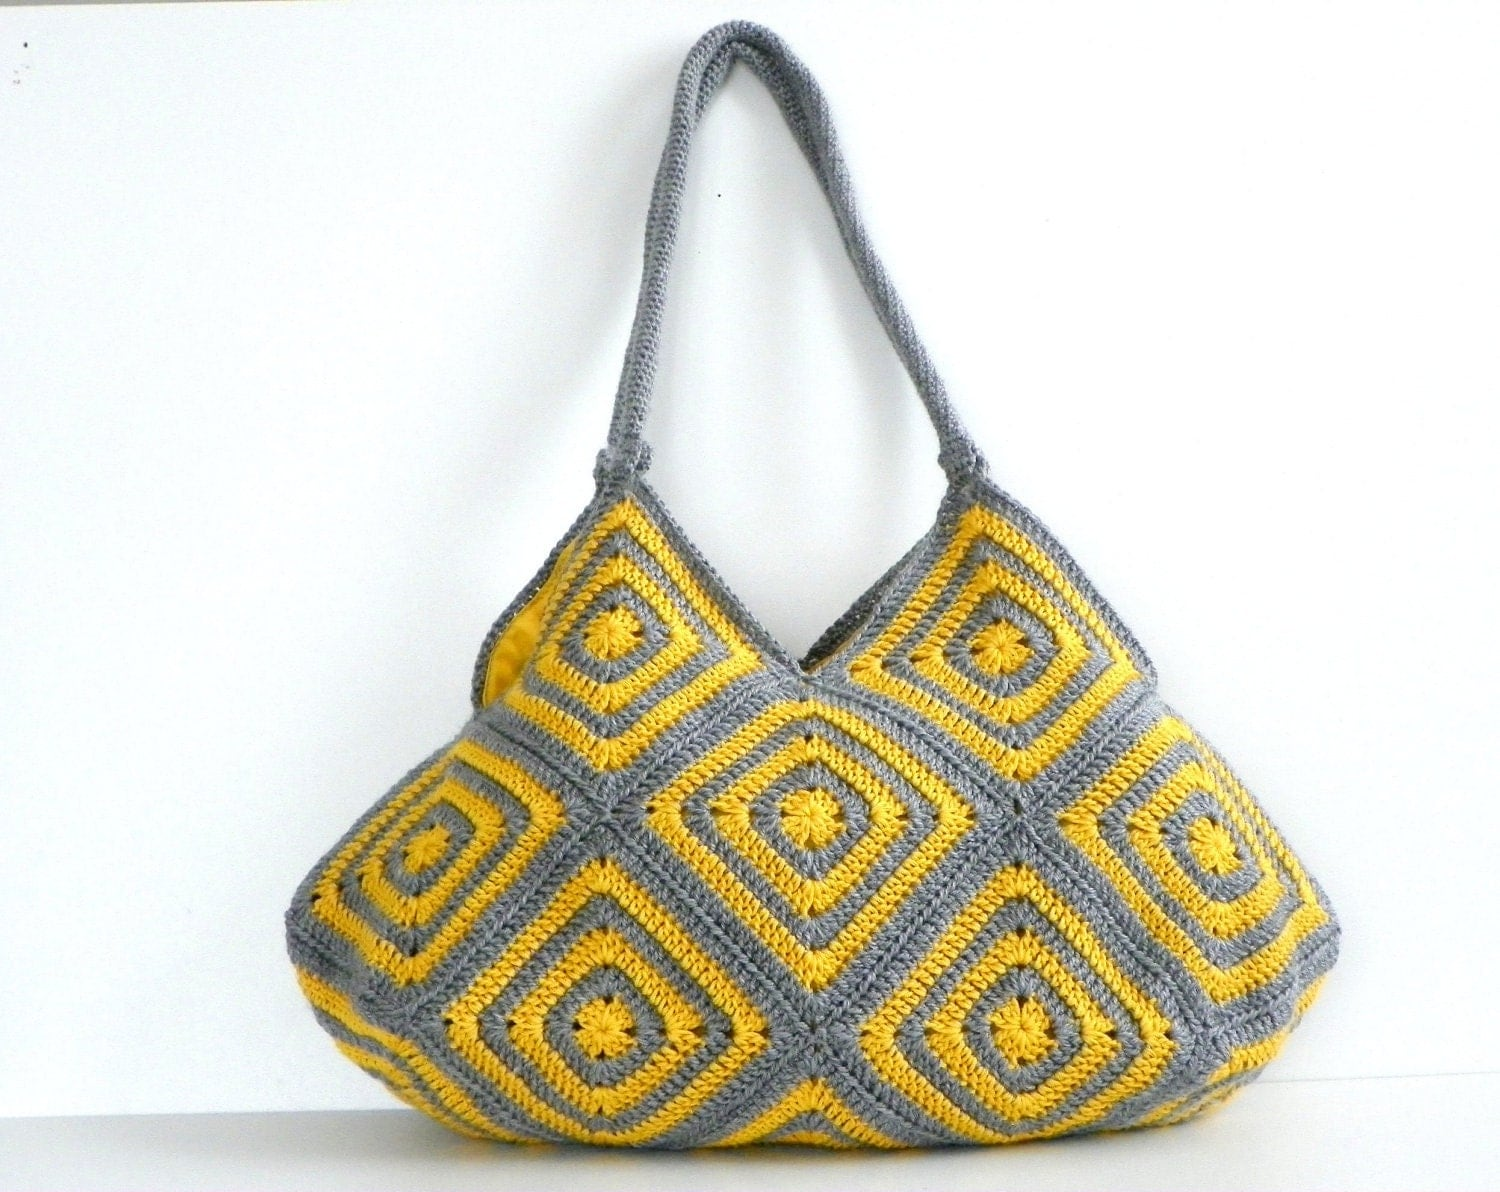 New Crochet Bags : SALE OFF 15% NzLbags New Summer Bag Afghan Crochet Bag by NzLbags